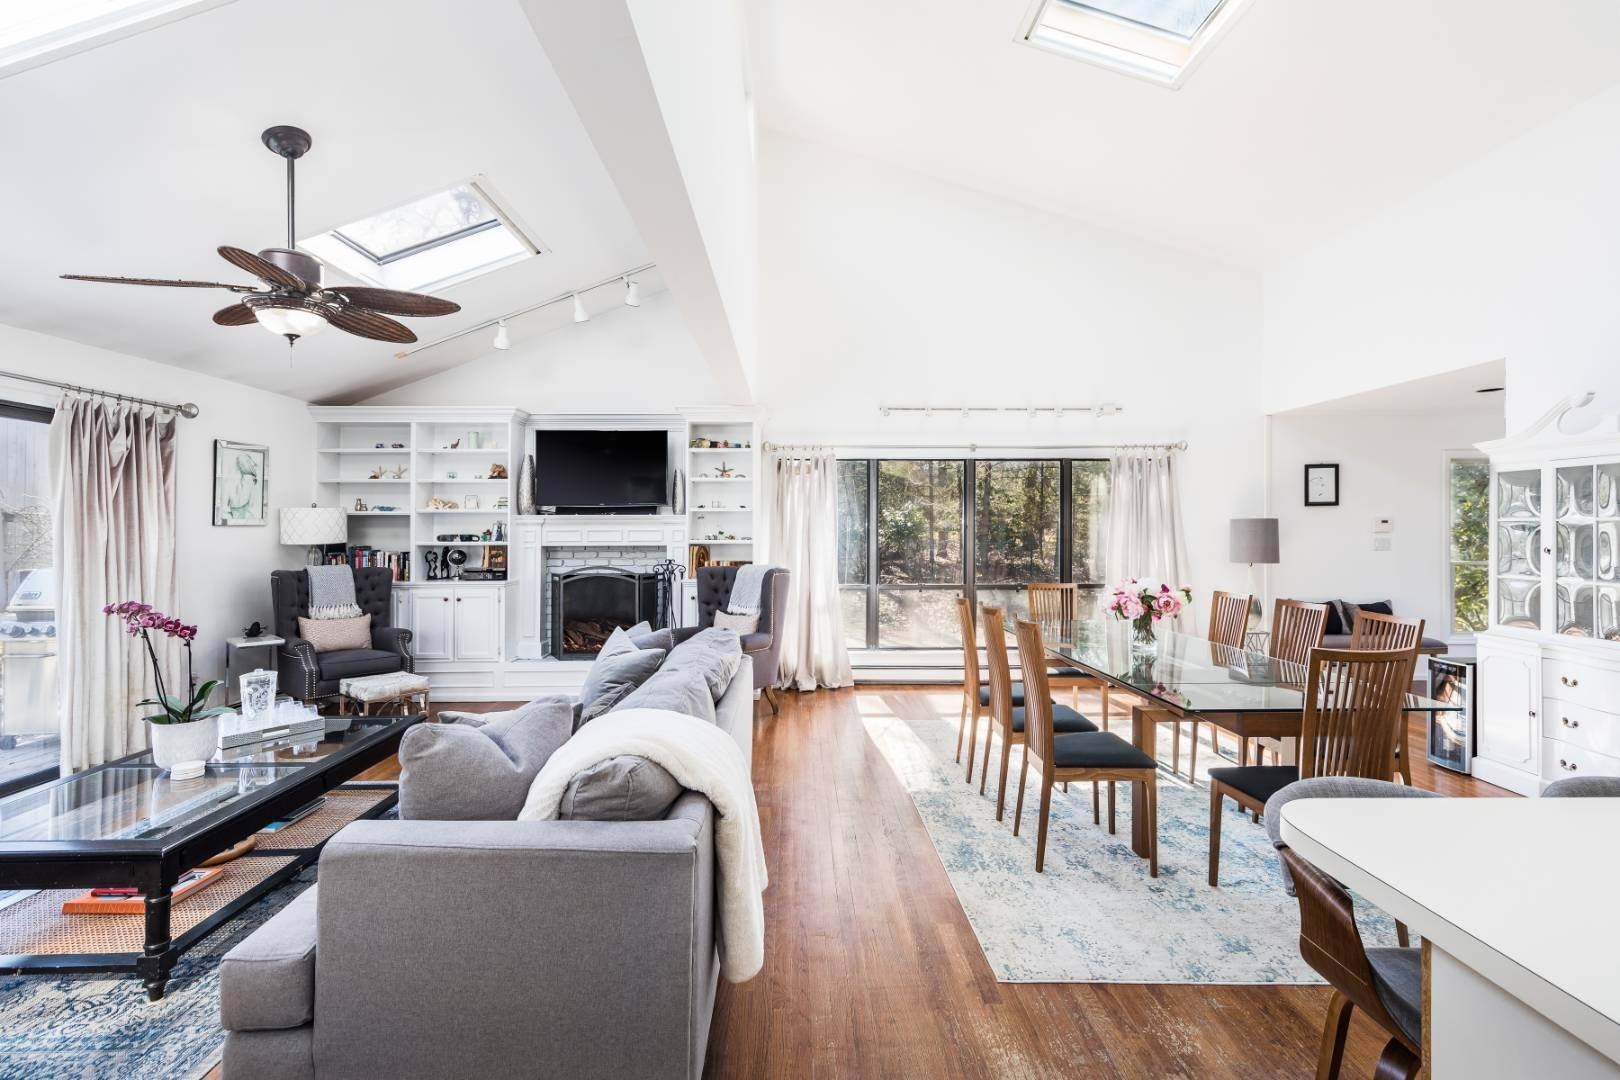 Single Family Home for Sale at Amazing Opportunity 6 Duke Drive, East Hampton, NY 11937